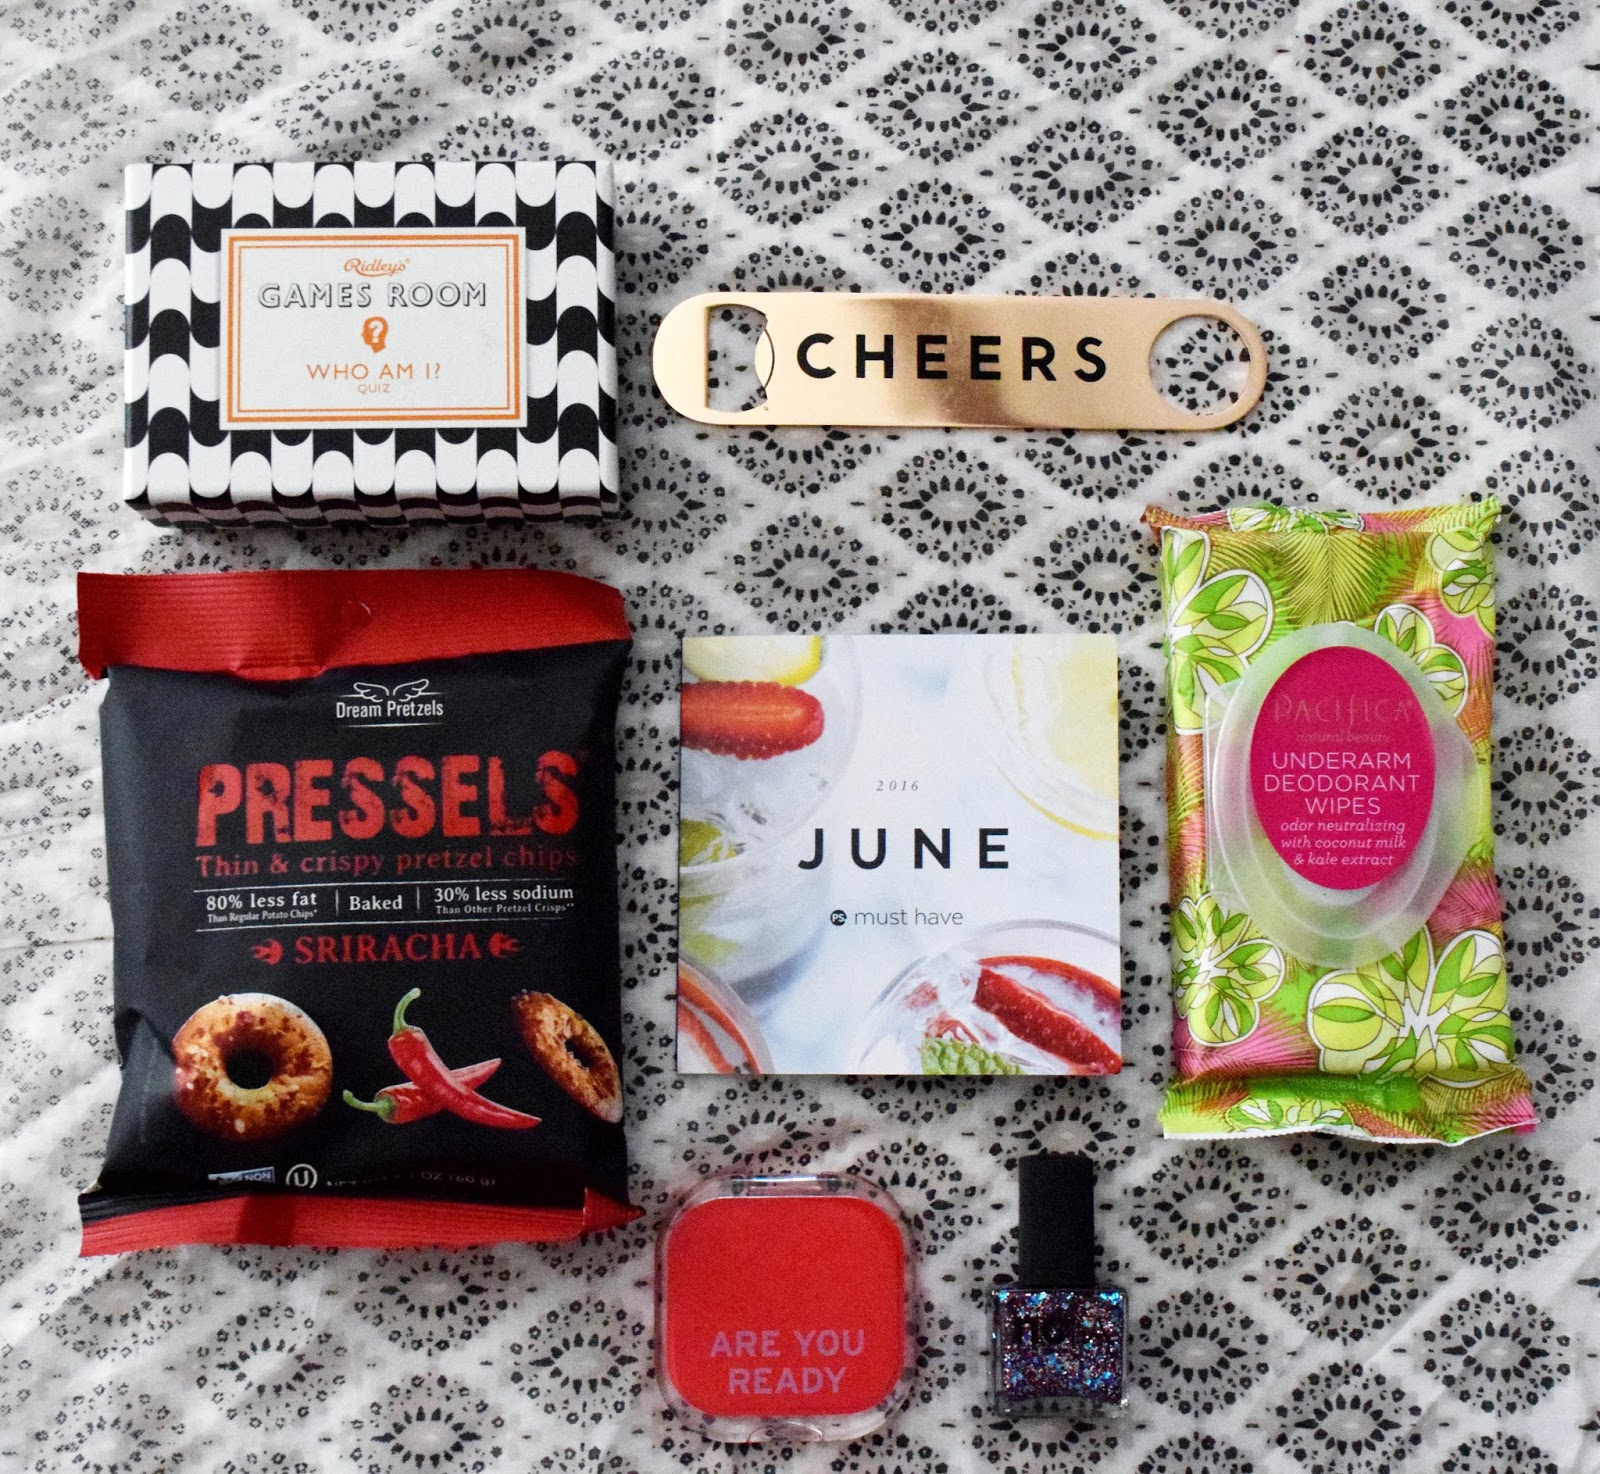 subscription box, june box, popsugar, must haves, popsugar june box, popsugar subscription box, popsugar must haves, popsugar june must haves, 4th of july nail polish, summer scarf, pretzels, cheers, underarm wipes, who am i